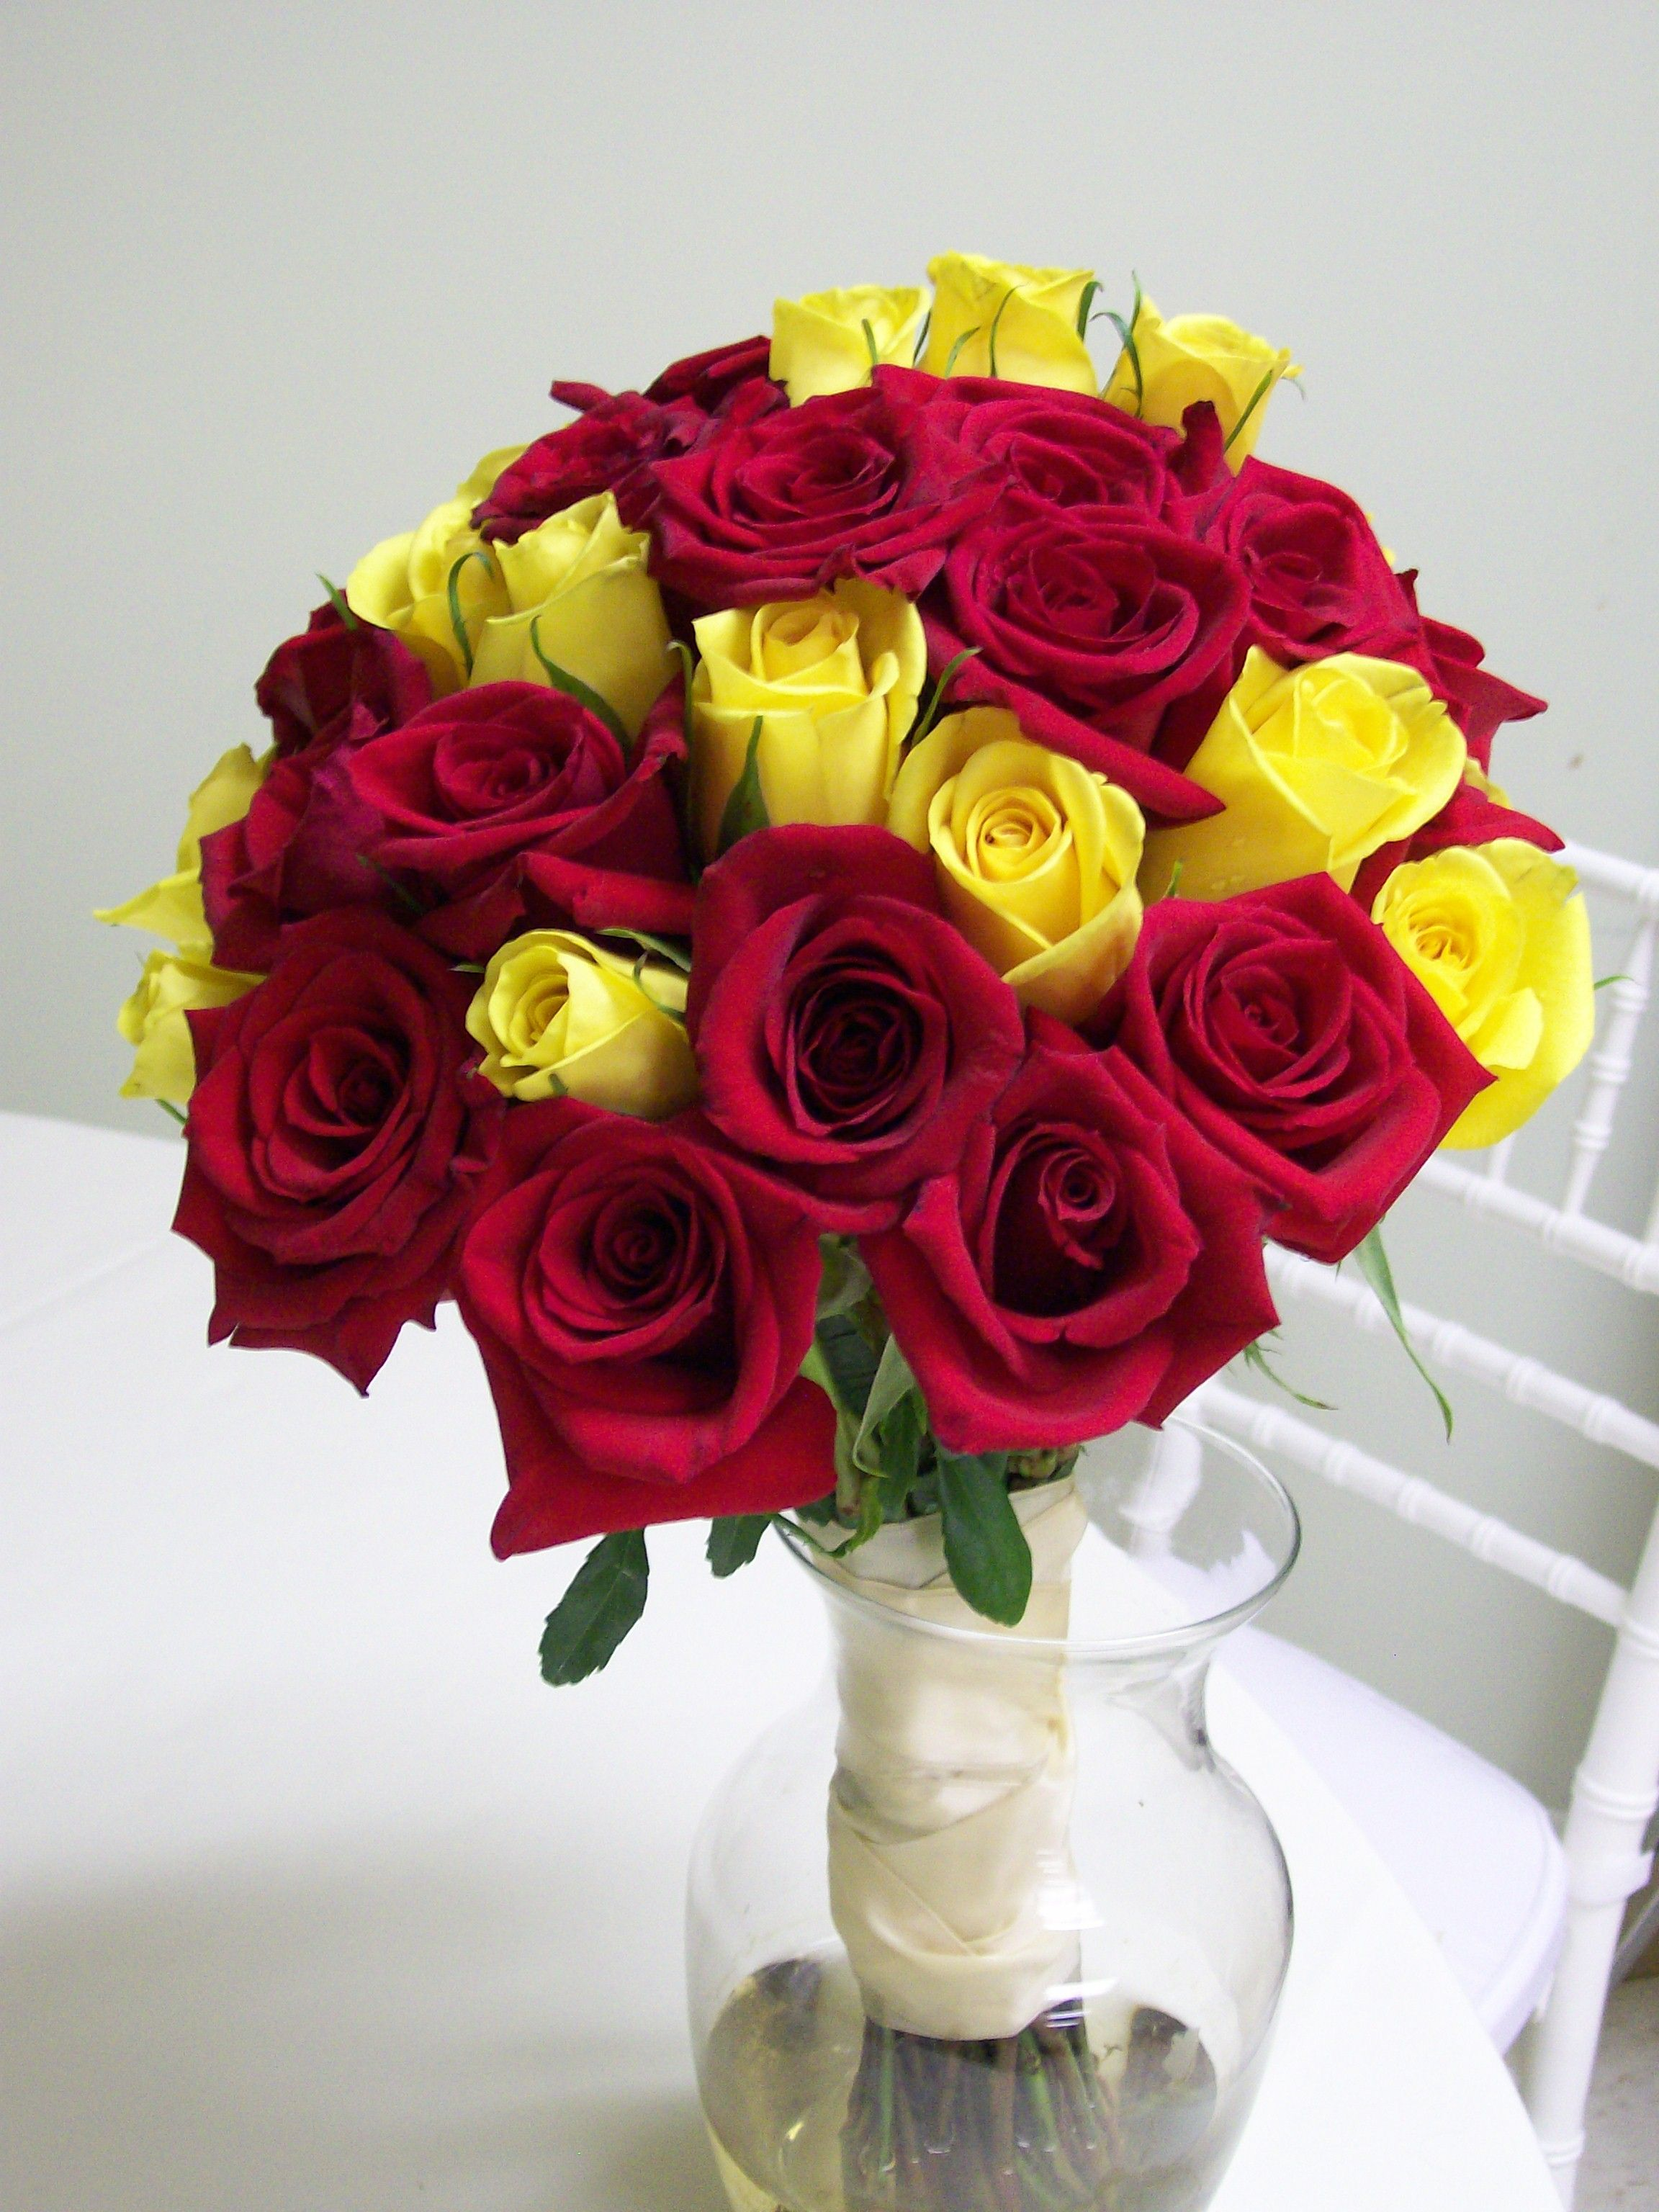 Red and yellow wedding flowers carrie anne powell red and yellow red and yellow wedding flowers carrie anne powell red and yellow rose bouquetcarrie anne powell izmirmasajfo